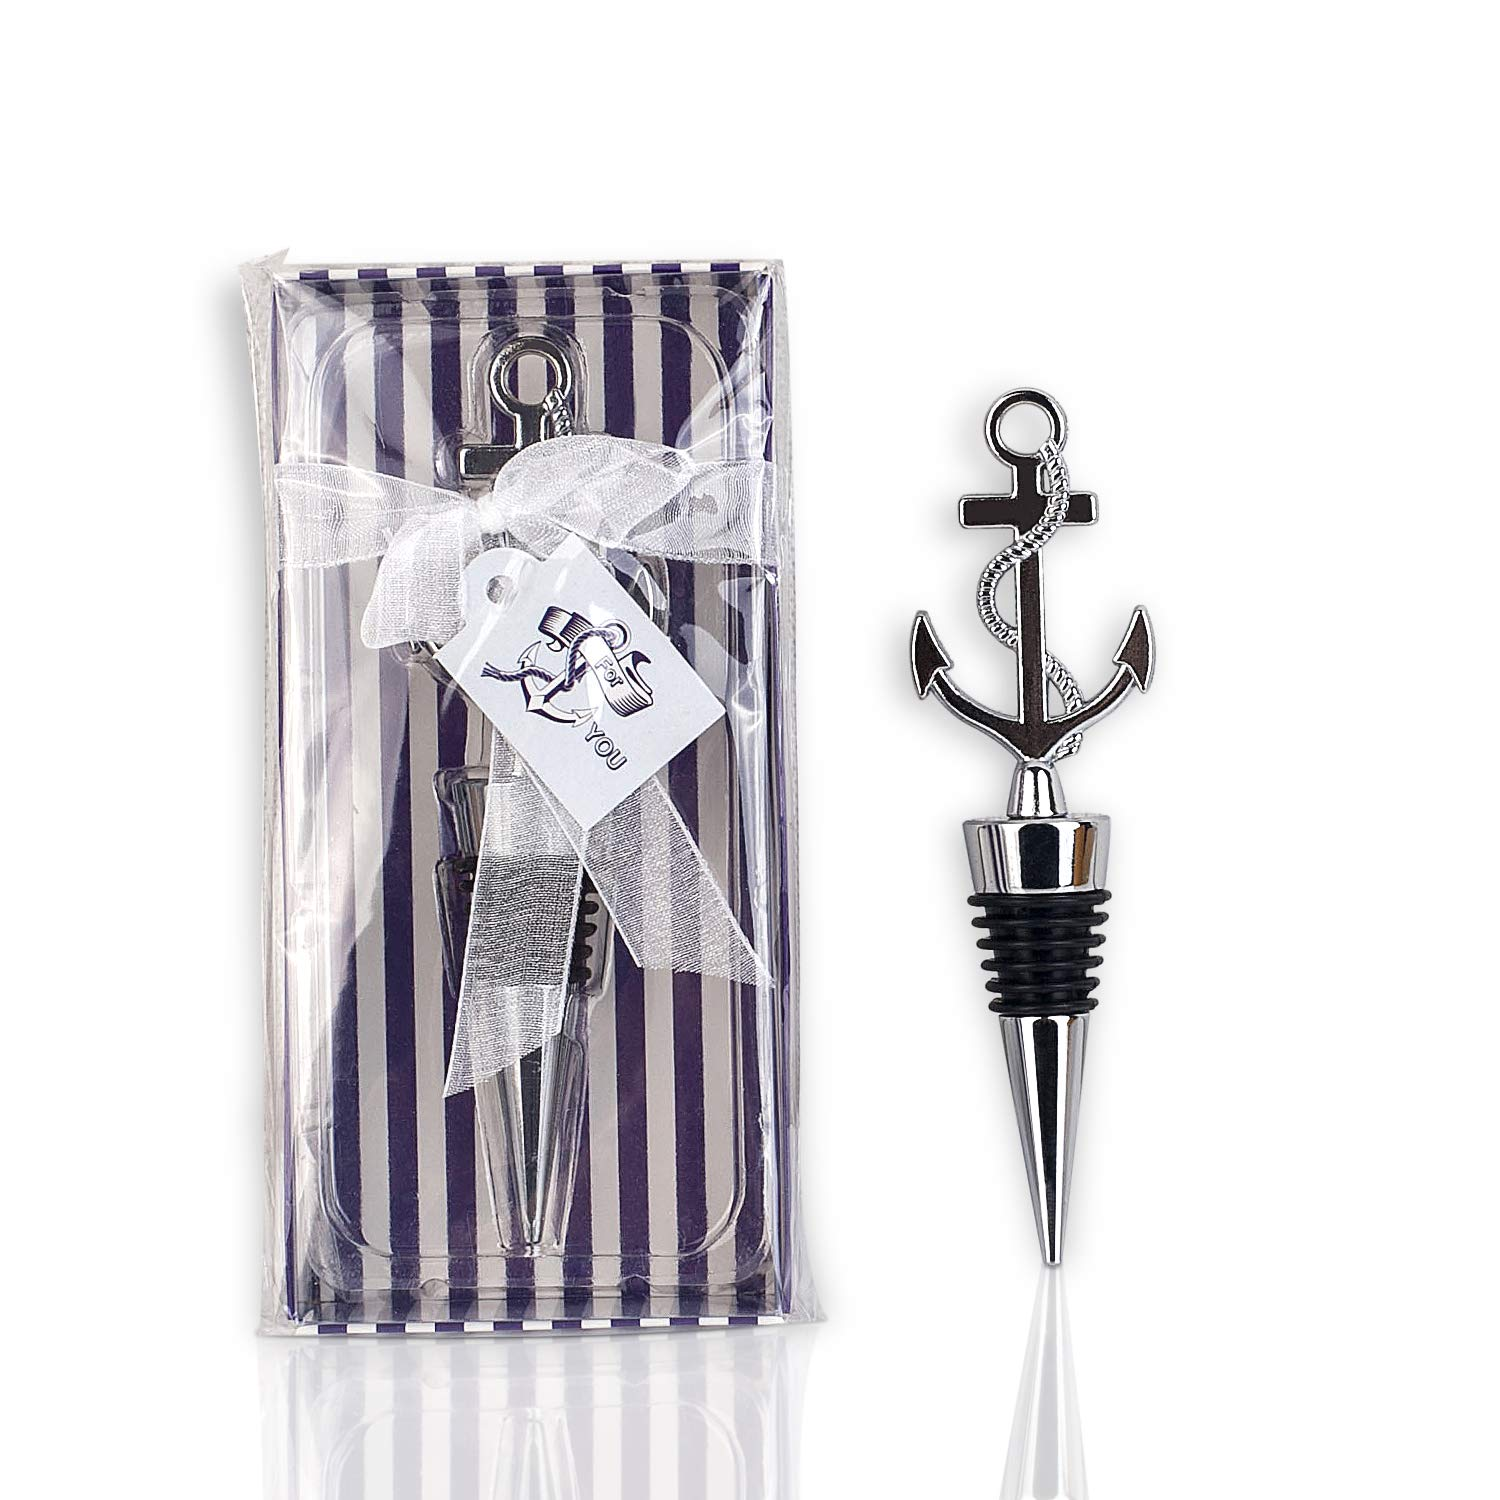 Anchor Design Wine Bottle Stopper-20pcs by dngcity